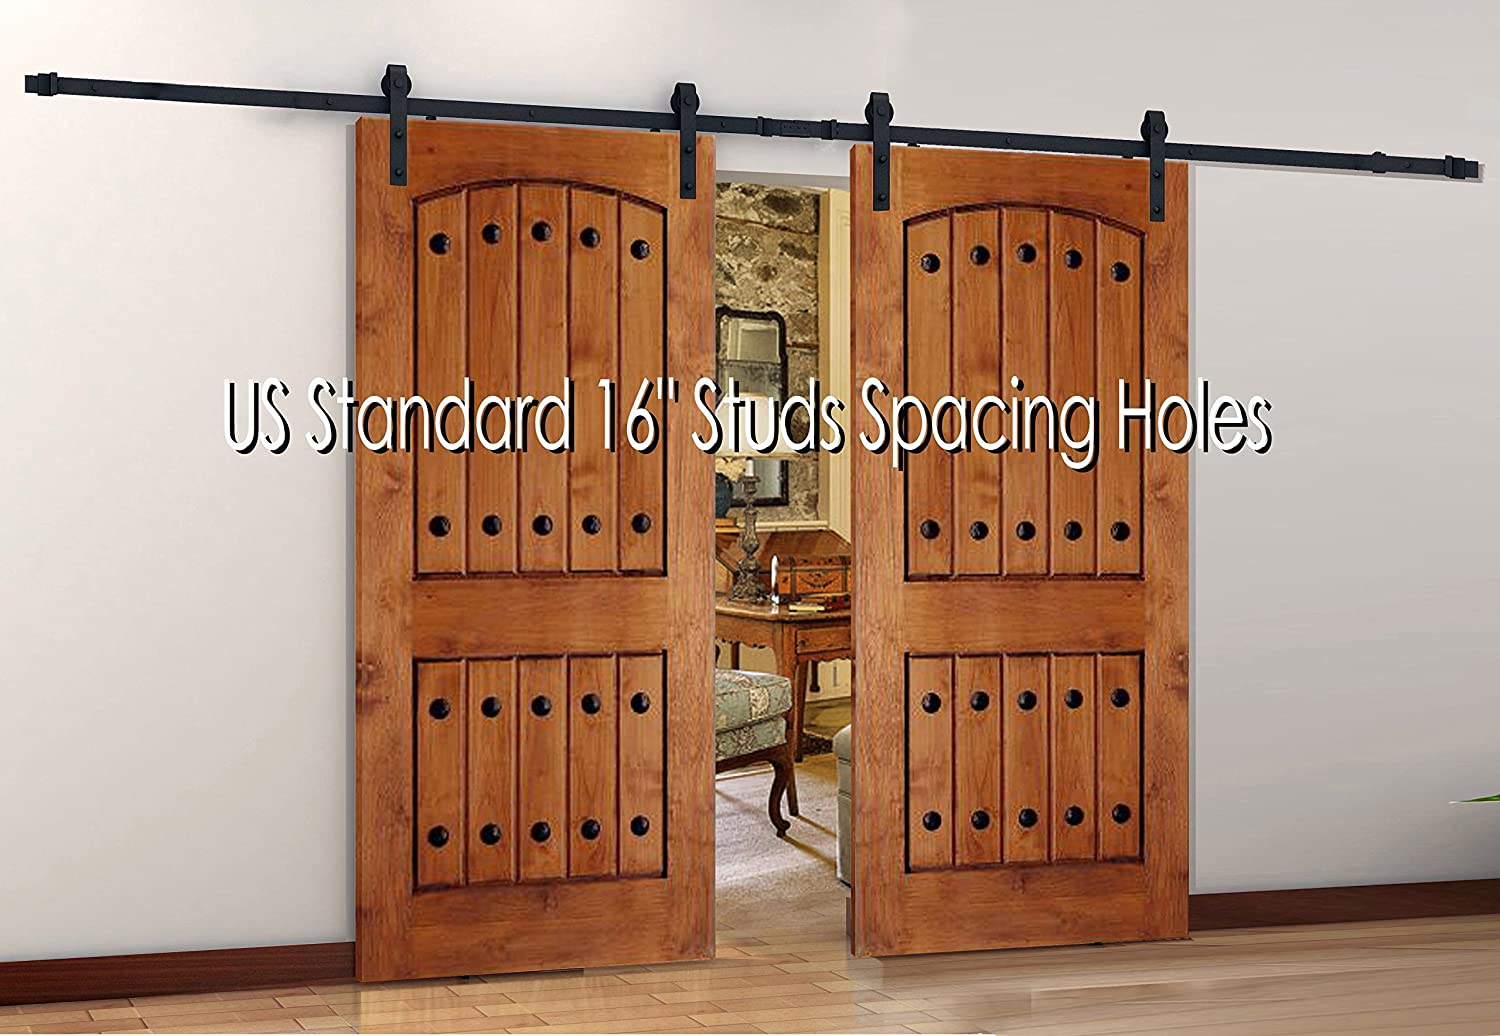 Antique Style Steel Sliding Wood Barn Door Hardware 120 With Splice Premium Quality Extra Supply Longer Bolts For Thickness 1 3 4 Concrete Anchor